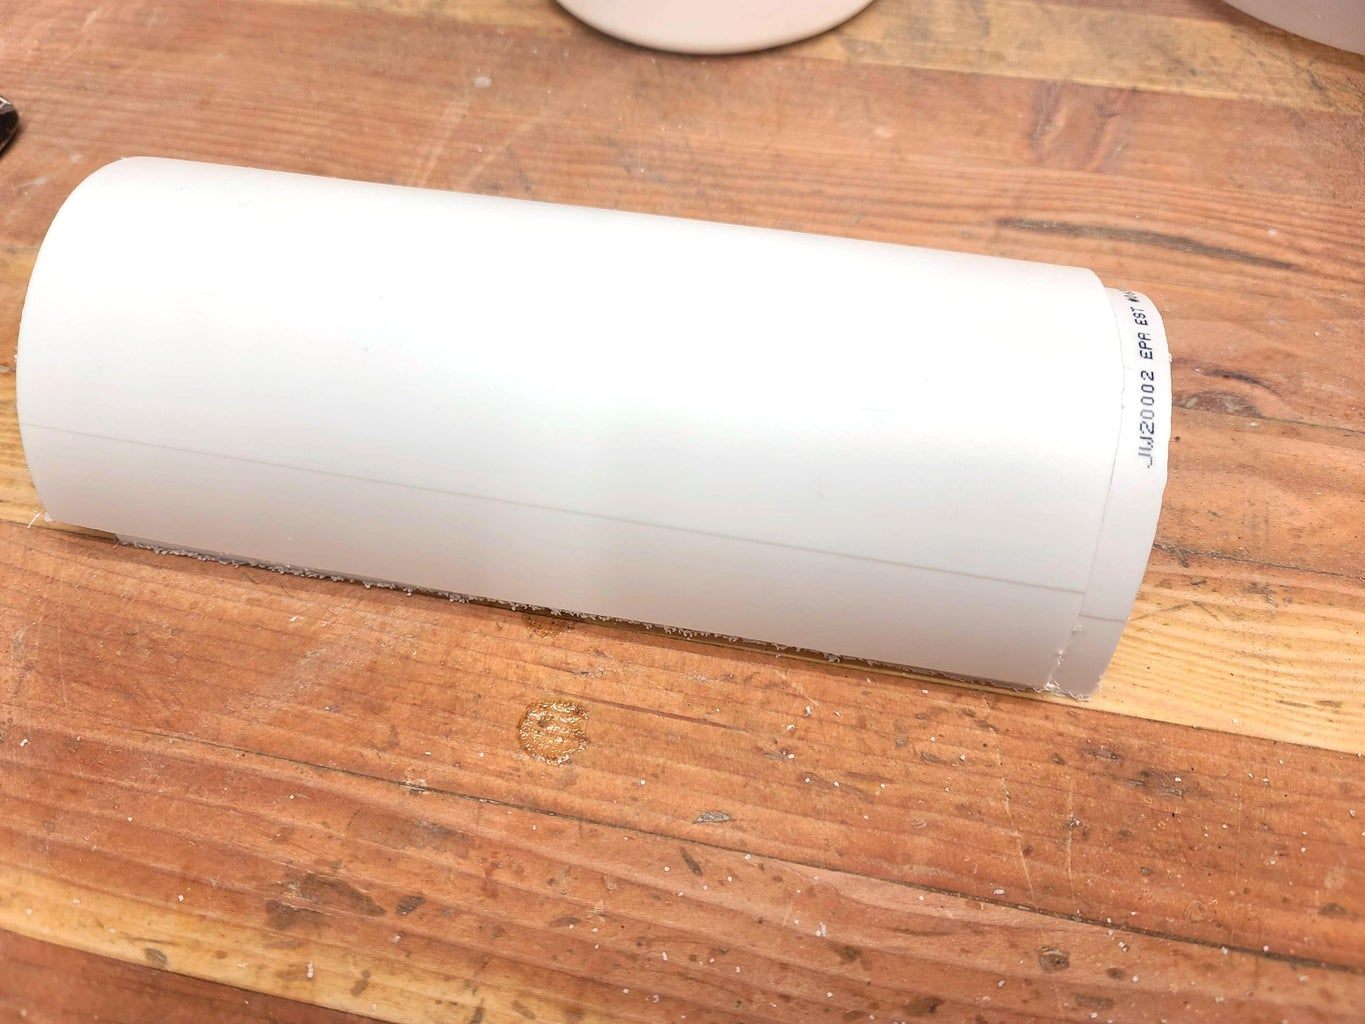 Cut Apart HDPE Containers